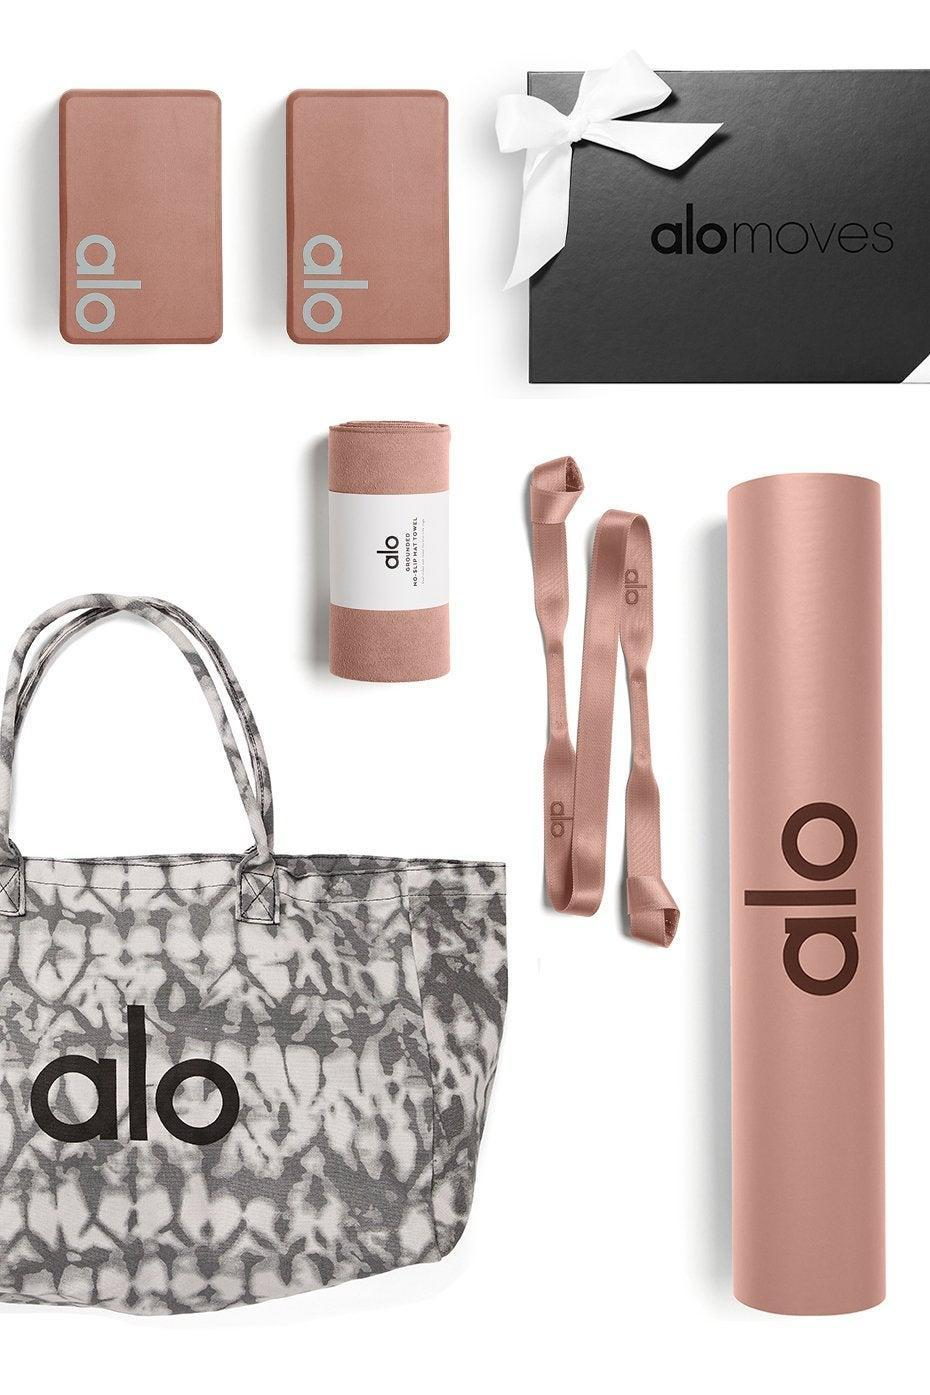 "<h2>Alo Yoga Ultimate Home Studio Set</h2>If they've been using the same, worn out yoga gear for years, it may be time to gift them an entire matching set. This bundle includes blocks, a bag, a yoga strap, a mat, a towel, and an entire year's subscription of <a href=""https://www.refinery29.com/en-us/2020/12/10206788/fitness-gift-cards-2020"" rel=""nofollow noopener"" target=""_blank"" data-ylk=""slk:Alo Moves"" class=""link rapid-noclick-resp"">Alo Moves</a>.<br><br><br><strong>Alo Yoga</strong> Ultimate Home Studio Set, $, available at <a href=""https://go.skimresources.com/?id=30283X879131&url=https%3A%2F%2Fwww.aloyoga.com%2Fproducts%2Fultimate-home-studio-set"" rel=""nofollow noopener"" target=""_blank"" data-ylk=""slk:Alo Yoga"" class=""link rapid-noclick-resp"">Alo Yoga</a>"